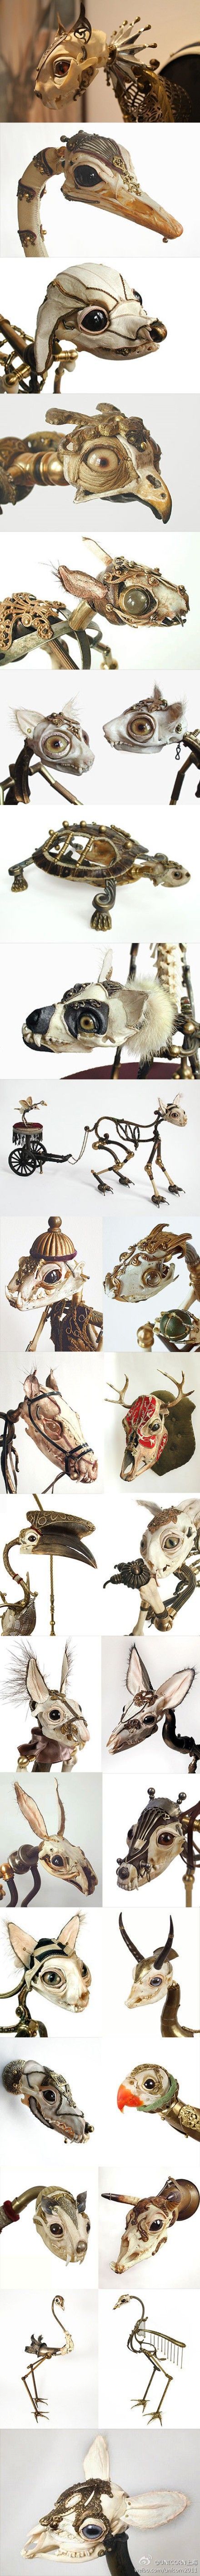 Jesscia Joslin: This is for the taxidermy fans. I like how she makes organic skeletons into steampunk mechanical creations. Kind of a bit android, with a turn of the century belle epoque feel):